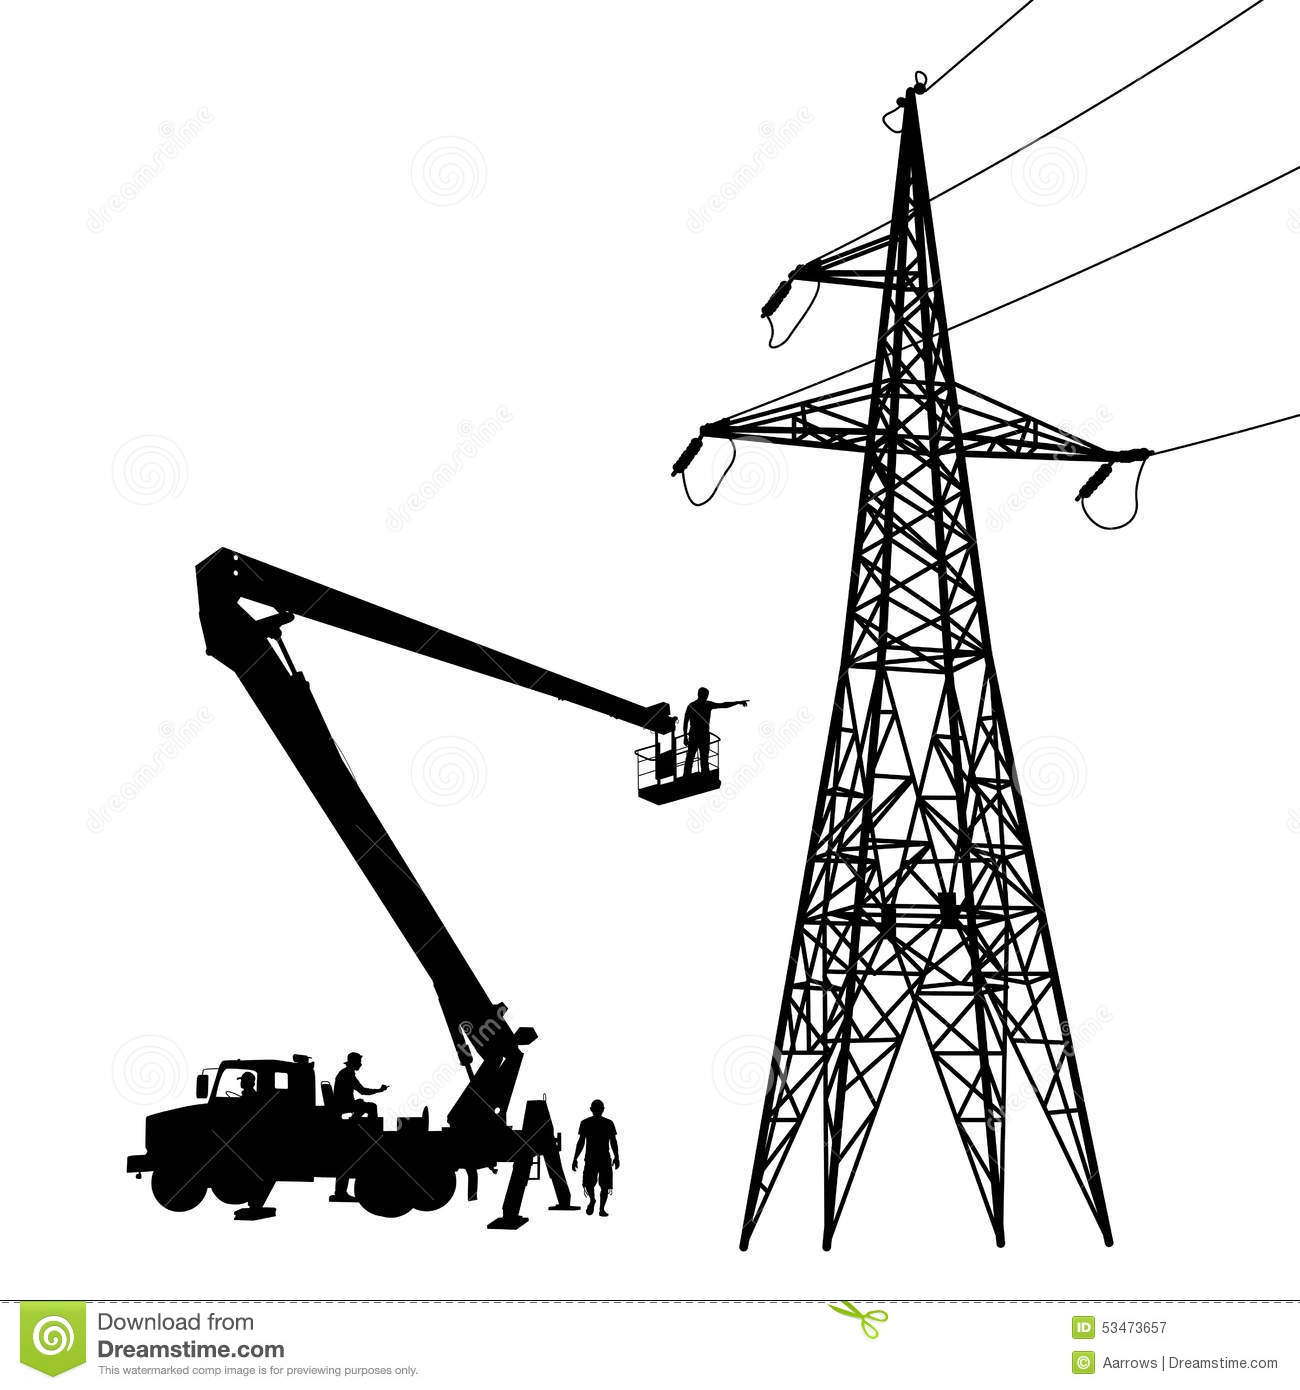 Electrician Making Repairs At A Power Pole Stock Vector